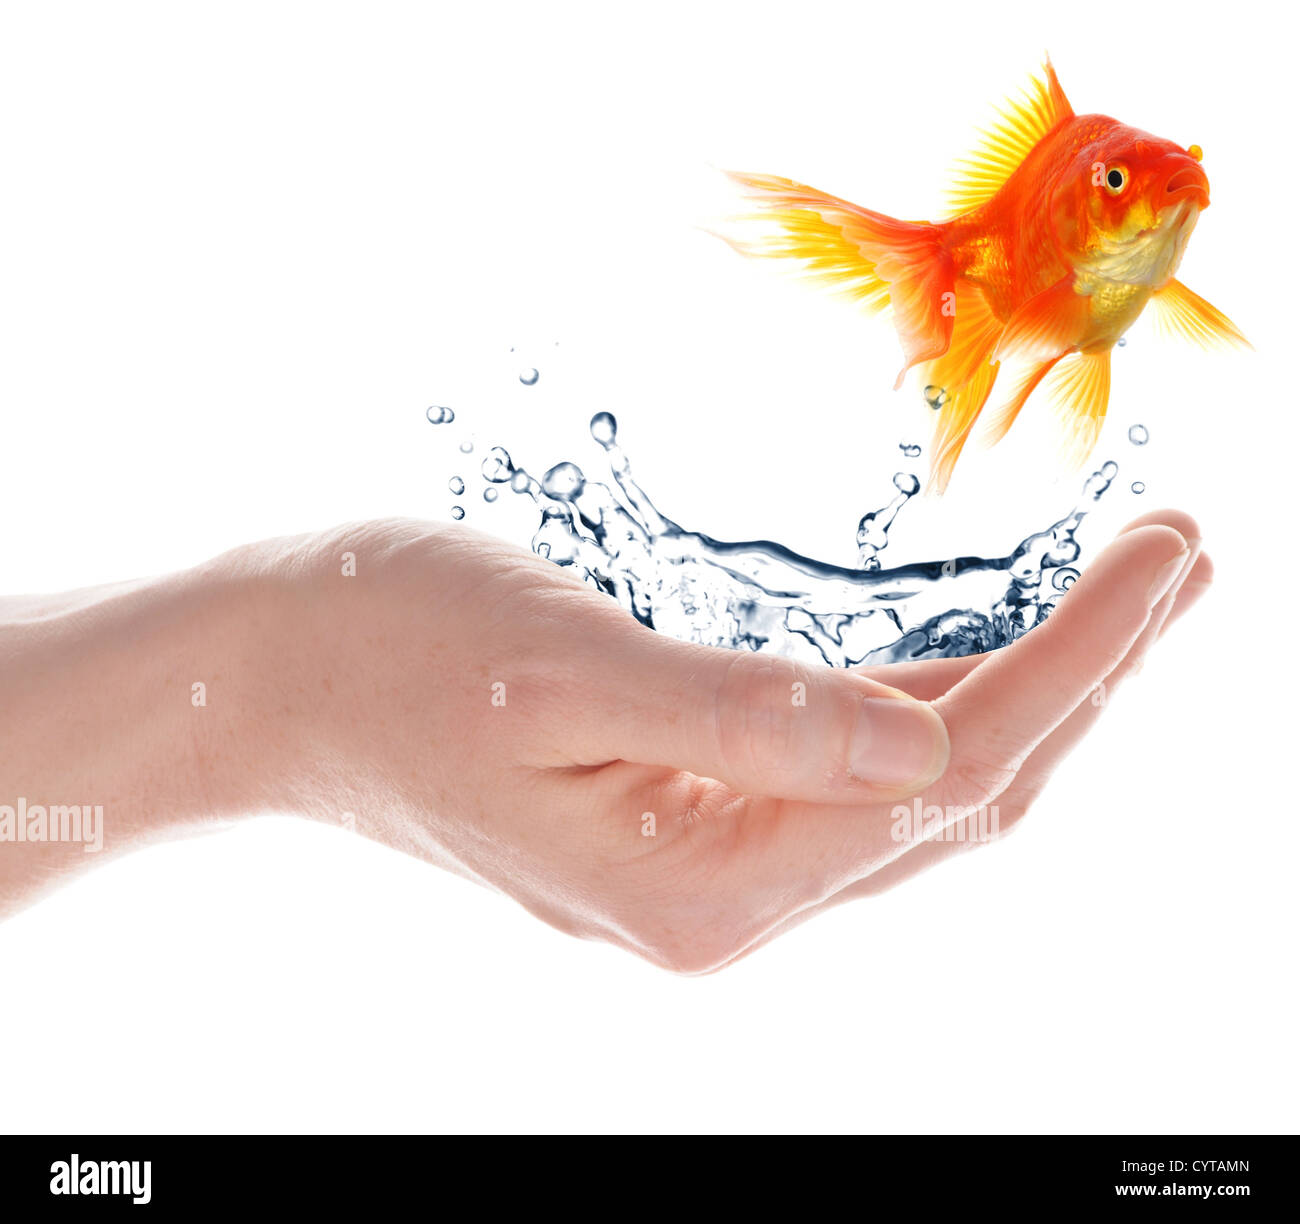 freedom free flee or escape concept with goldfish and hand - Stock Image